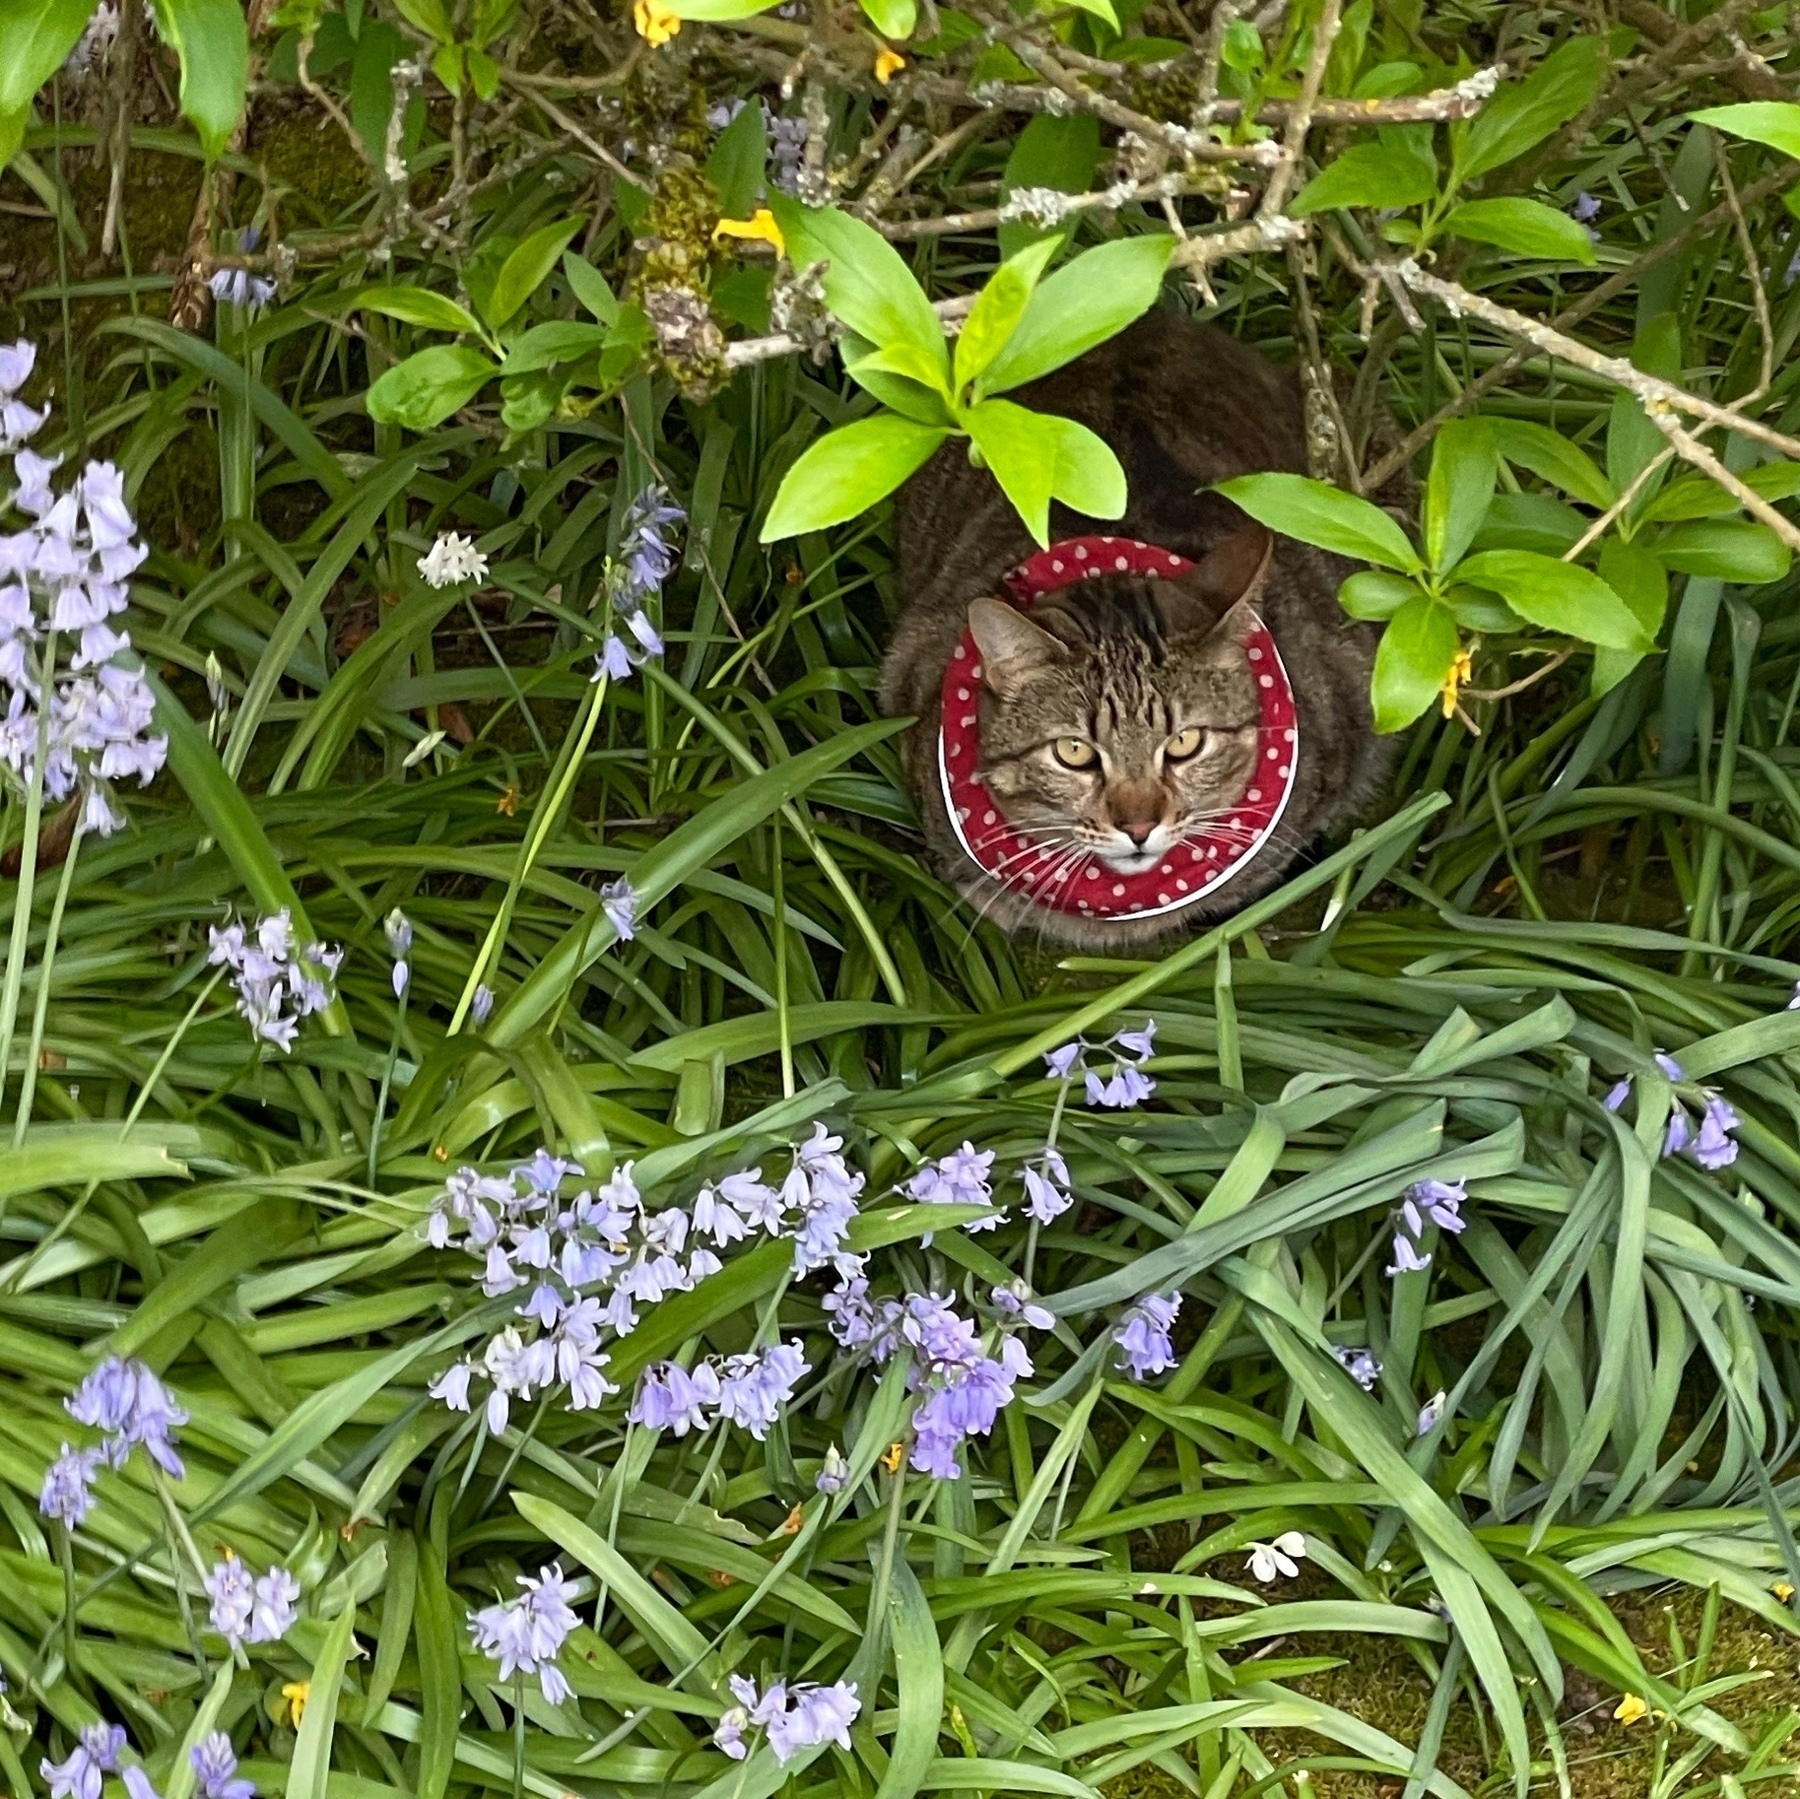 Striped cat peeking out from the foliage.